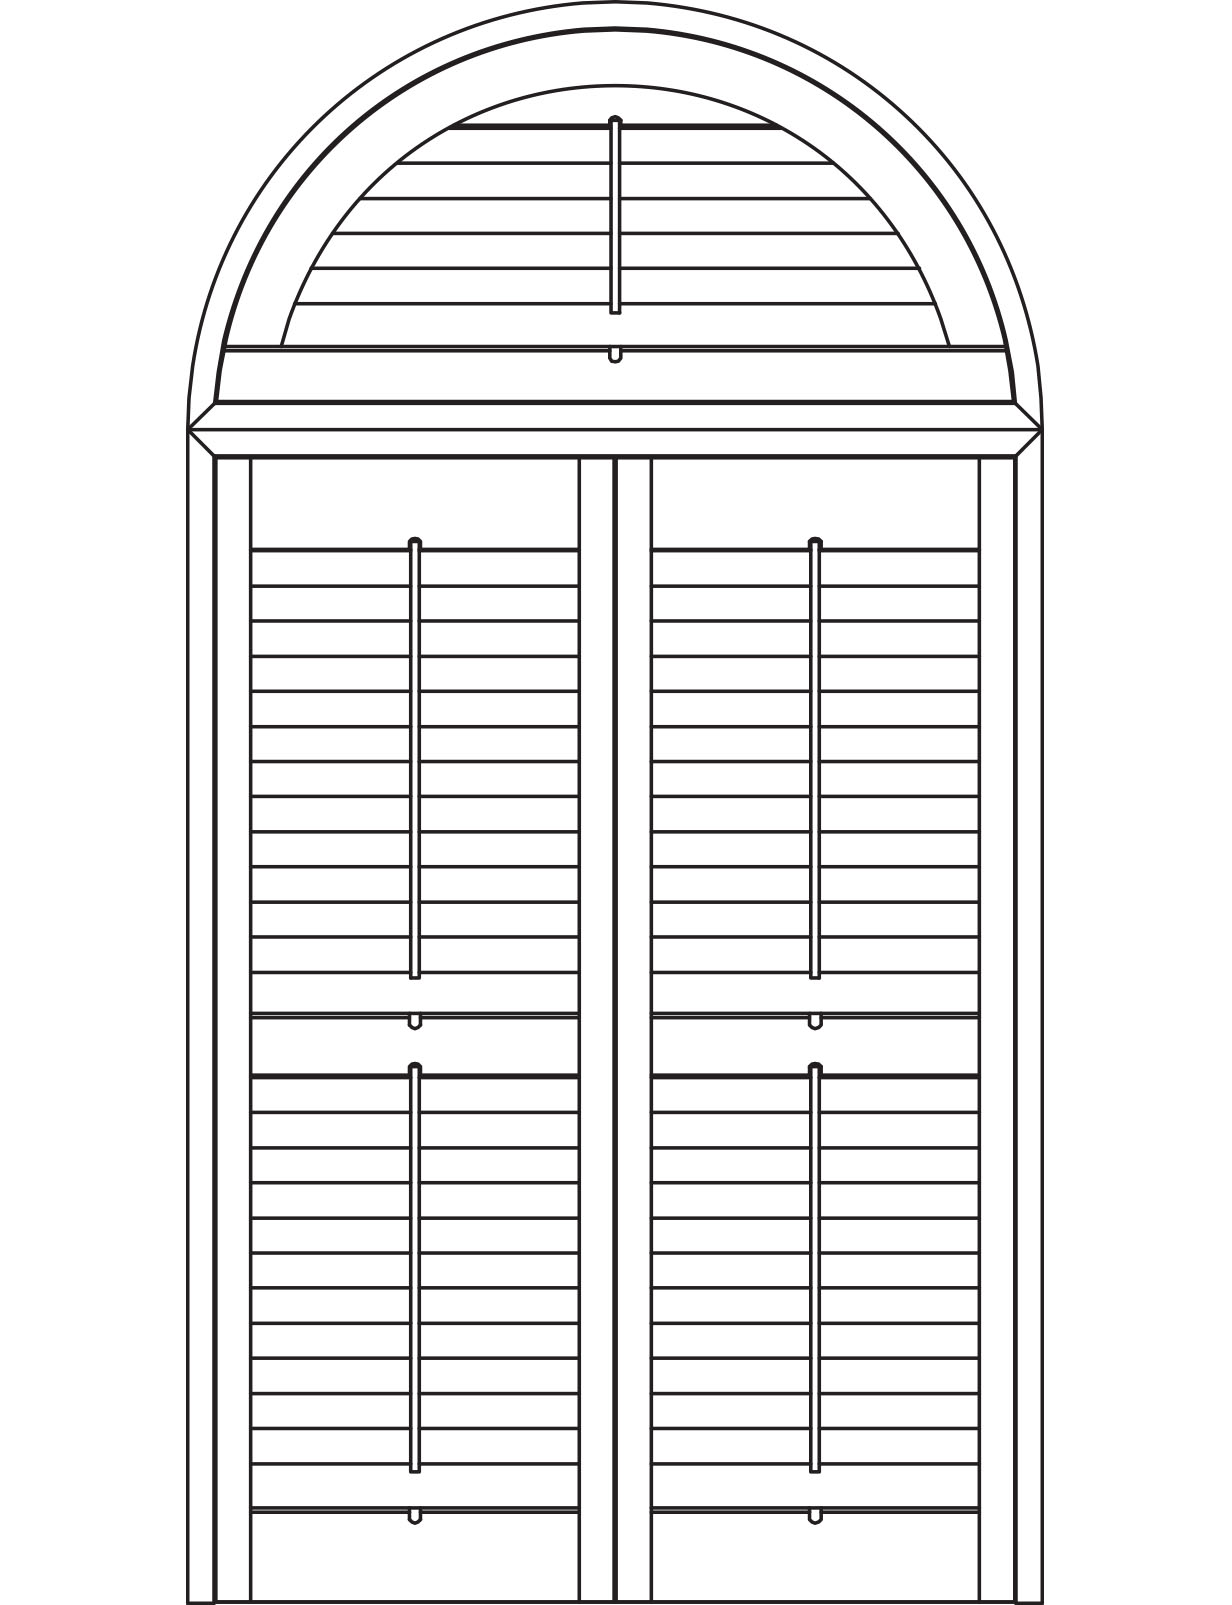 Push rod arched shutters